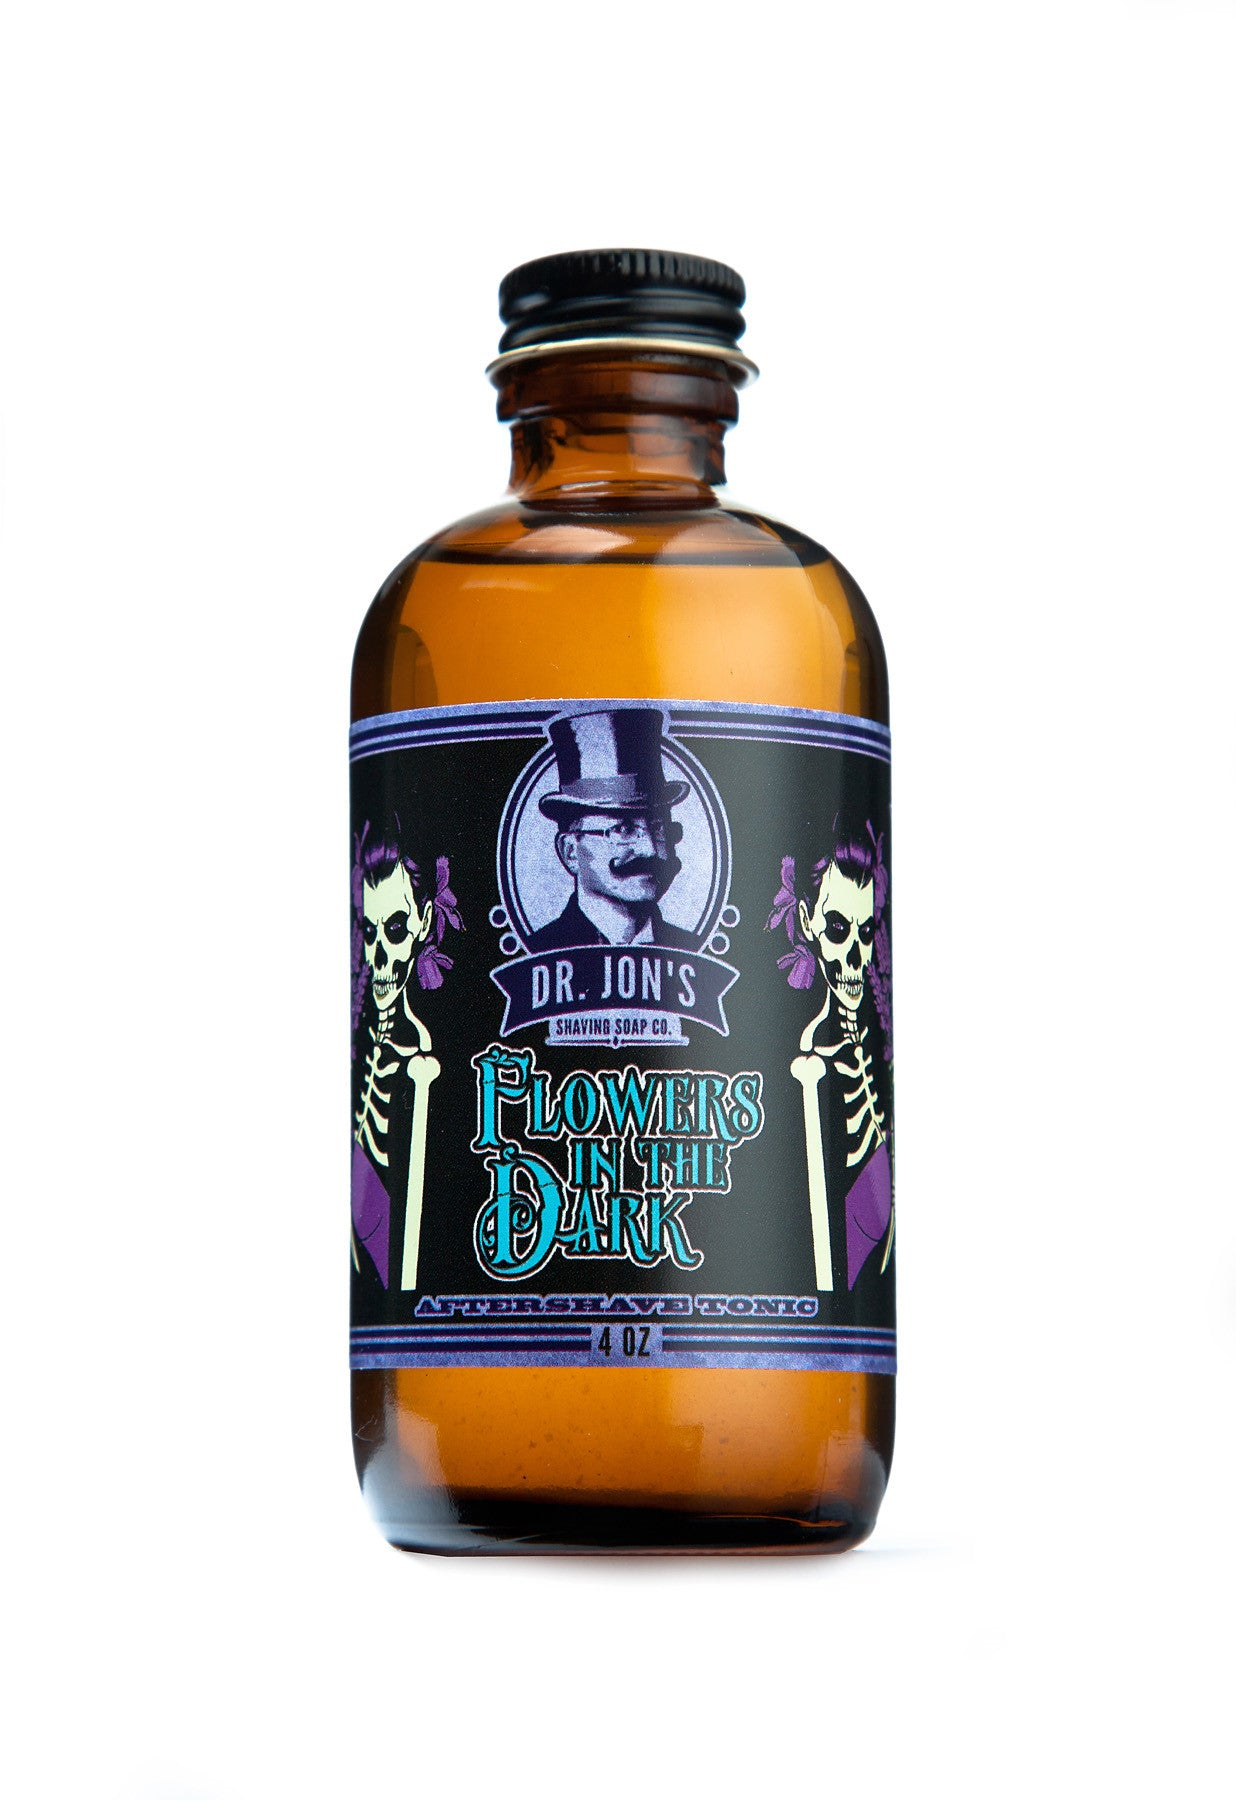 Dr. Jon's Flowers in the Dark After Shave Tonic